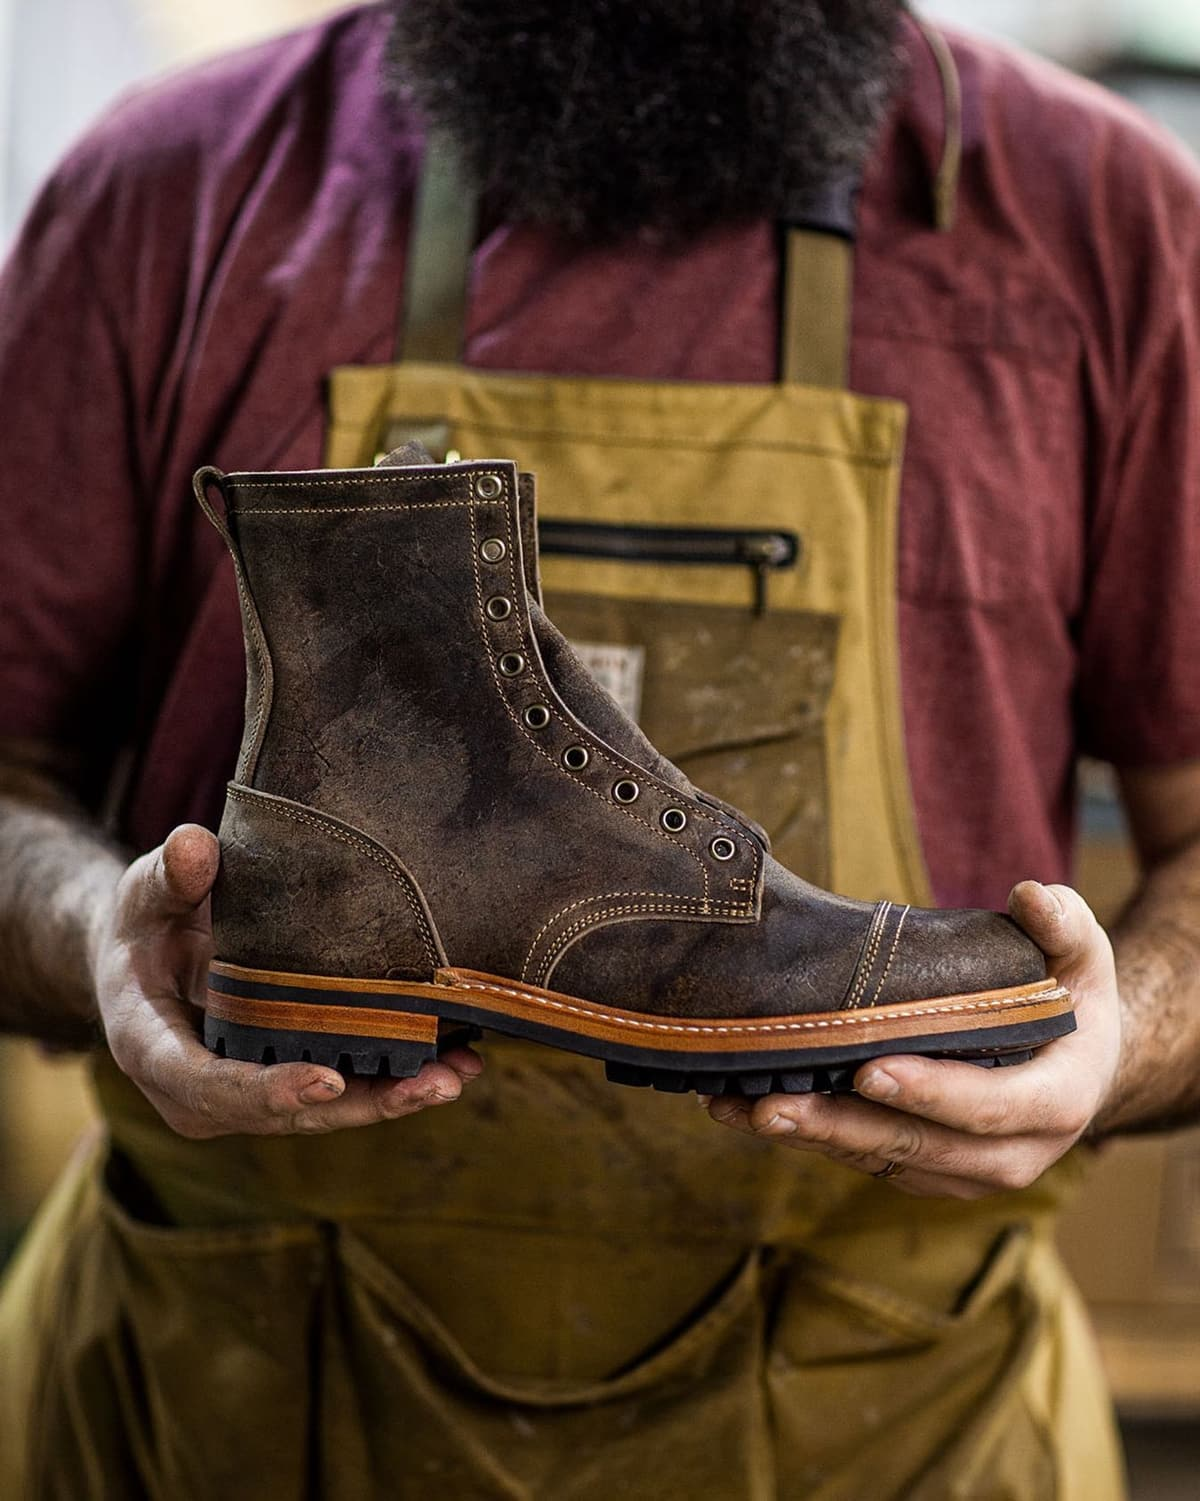 This Rambler boot is made in Eugene, Oregon, using leather from Charles F. Stead tannery in Leeds, UK